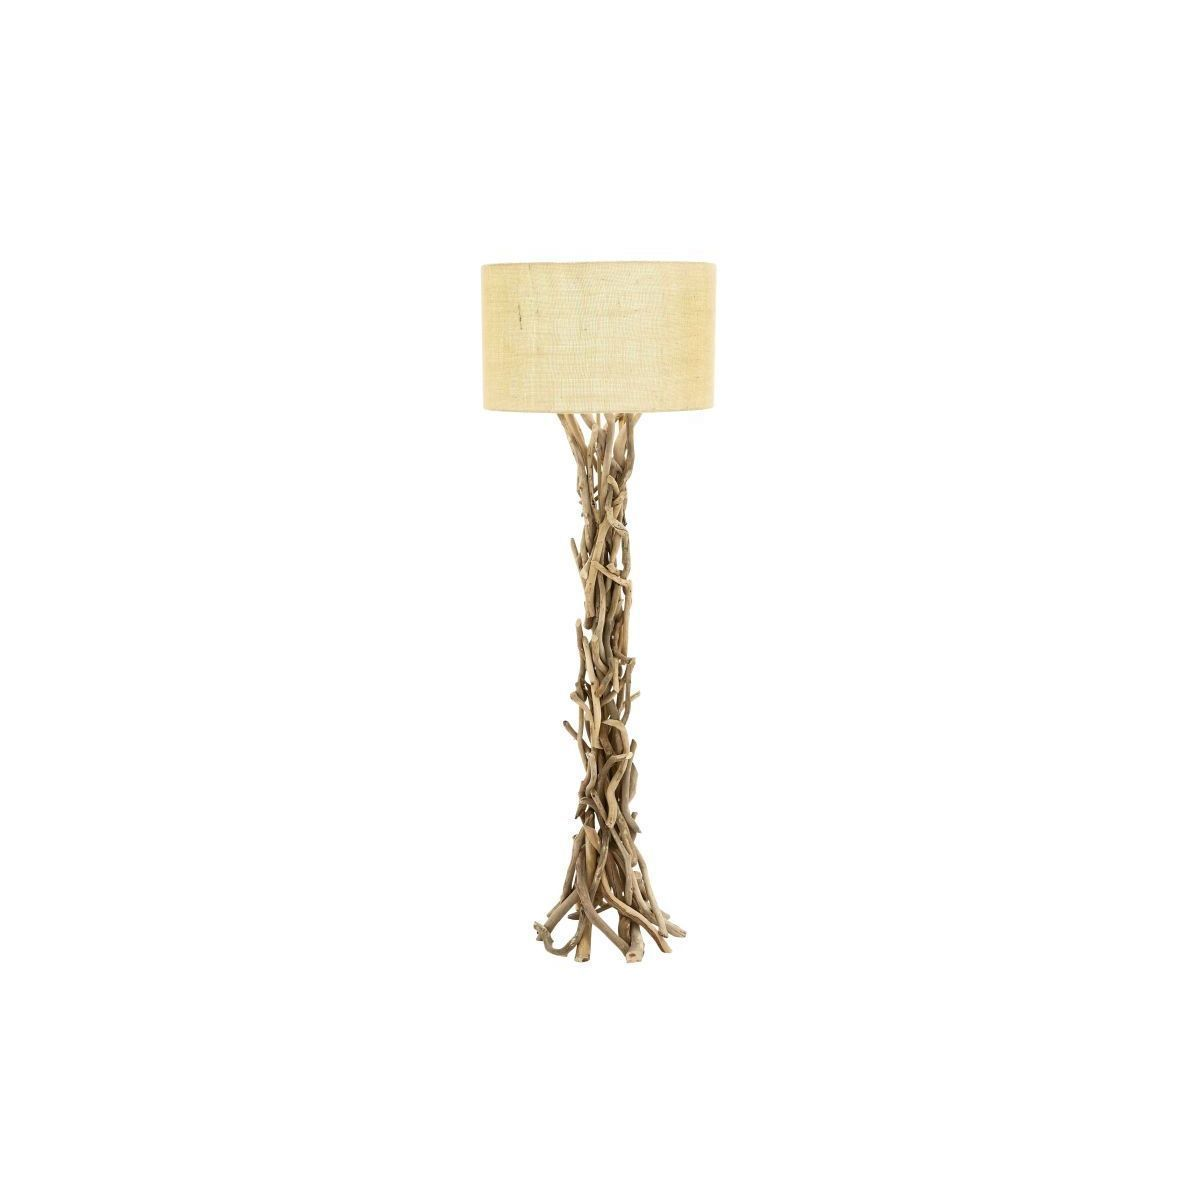 flower lamp driftwood ingenuity copper lamps yellow living glass floor most preeminent room